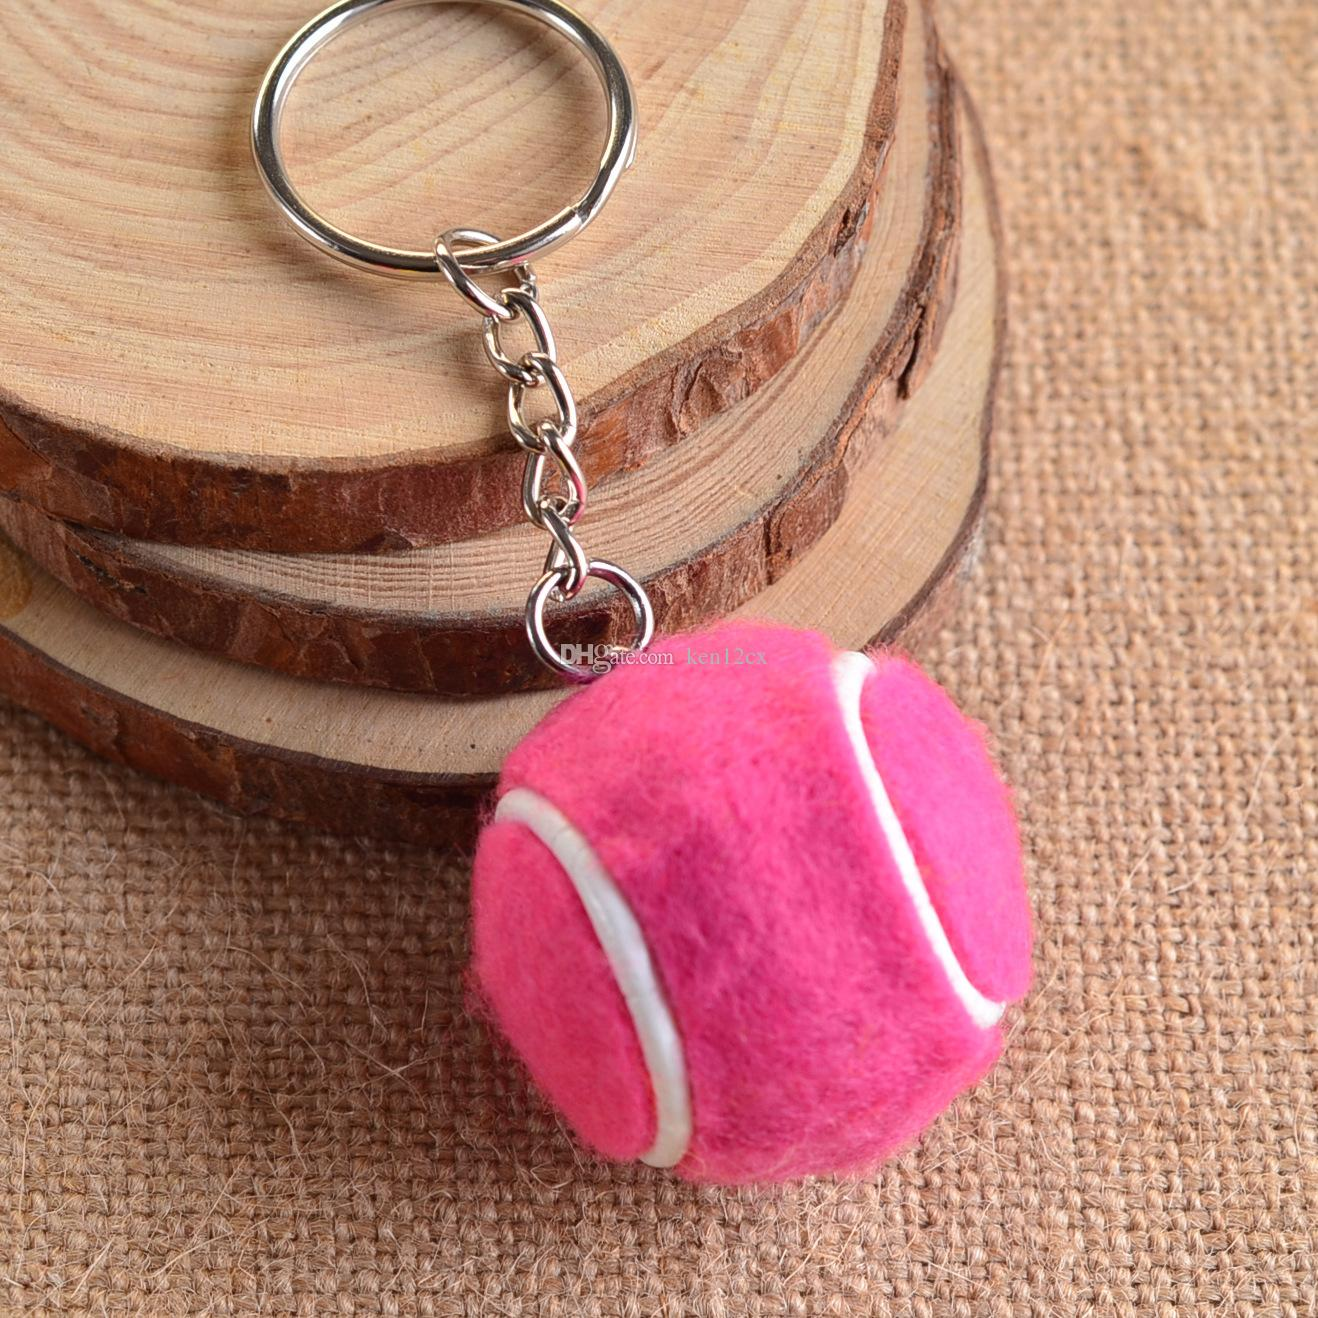 New key chain toys Pendant Tennis Rackets Keychain With Ball Fashion Accessories Souvenir Gift